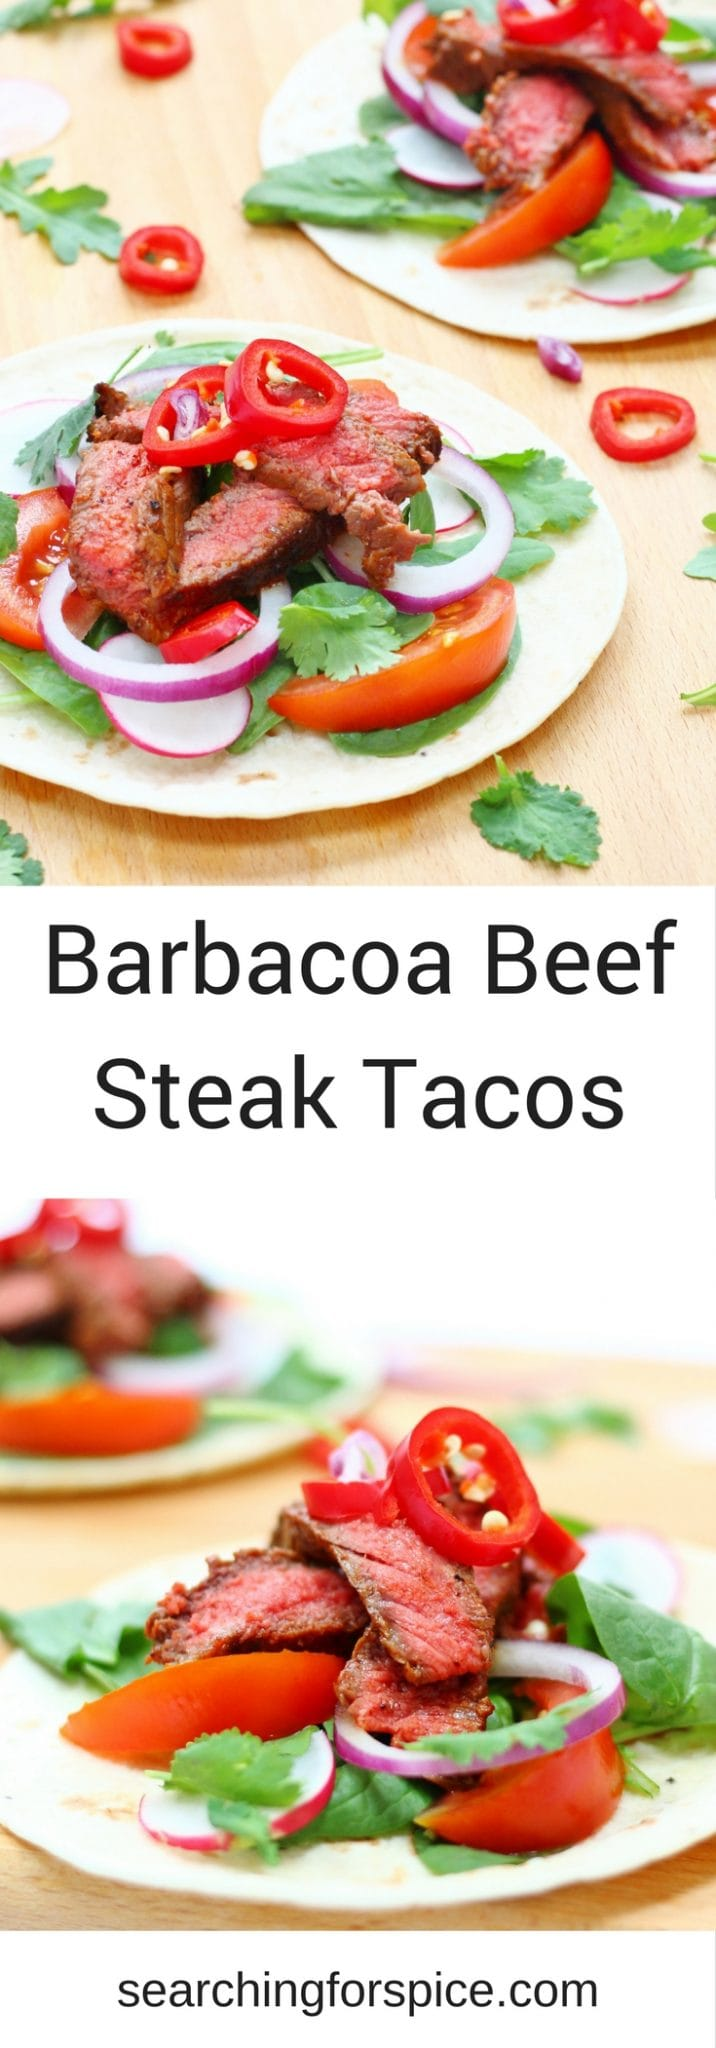 These barbacoa beef steak tacos make a delicious light healthy summer meal. Cook the steak on the bbq or inside and let everyone help themselves to the taco fillings and toppings. They make a tasty easy family meal.